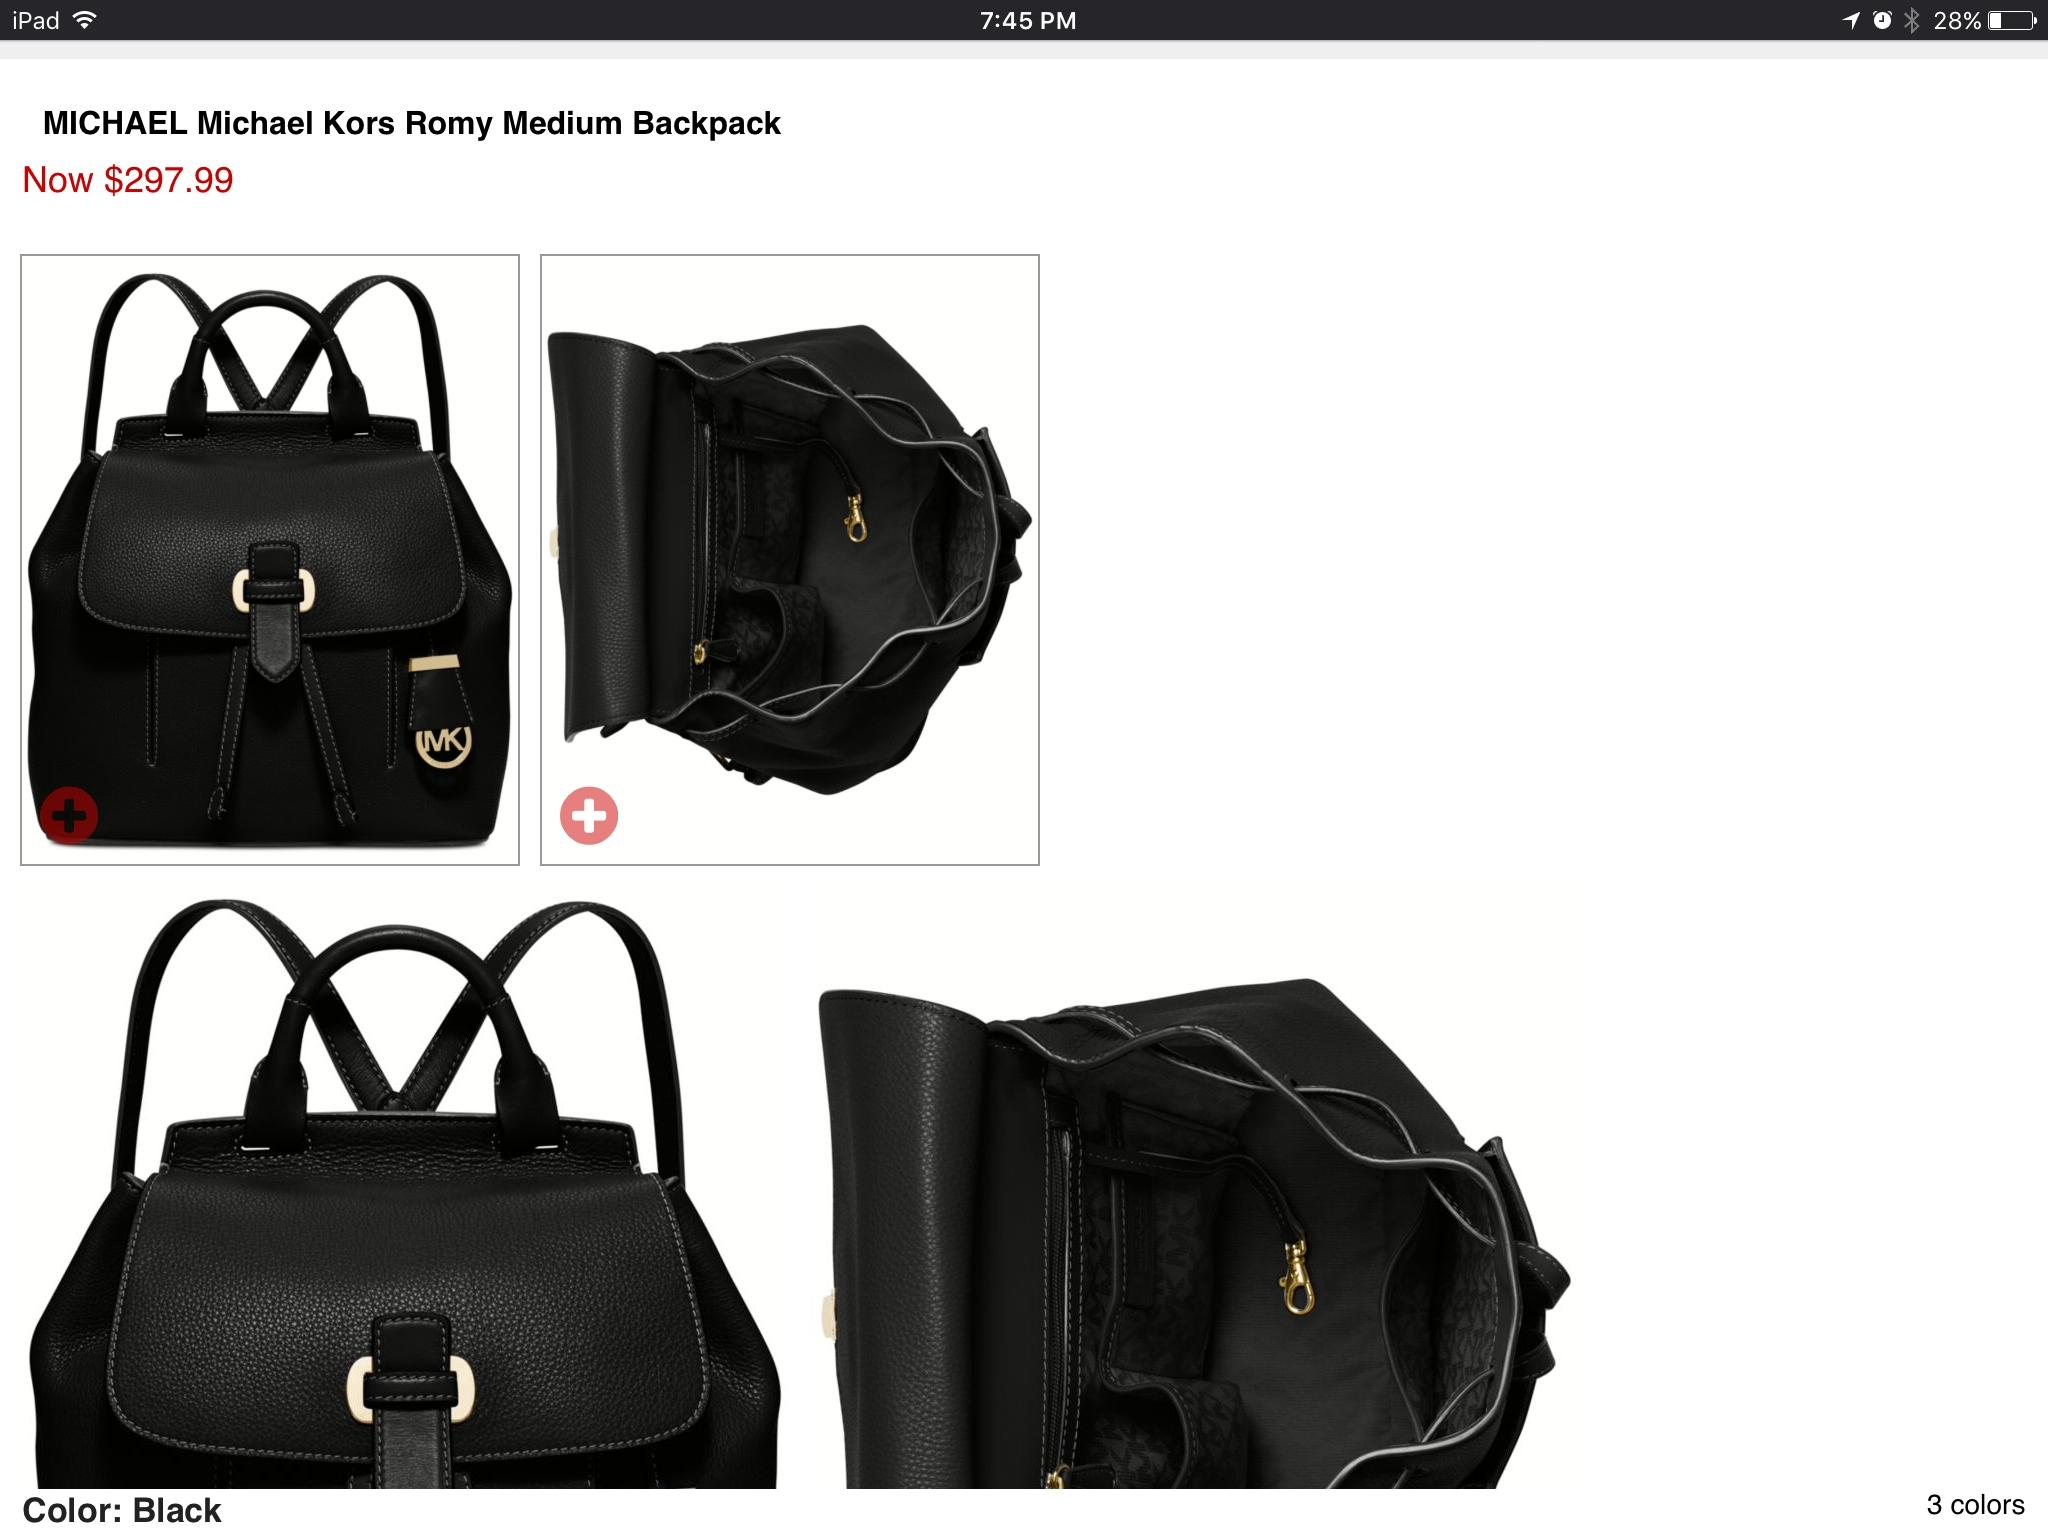 6f6339284ef0 ... ireland michael kors romy medium size black leather backpack tradesy  4b1a9 db510